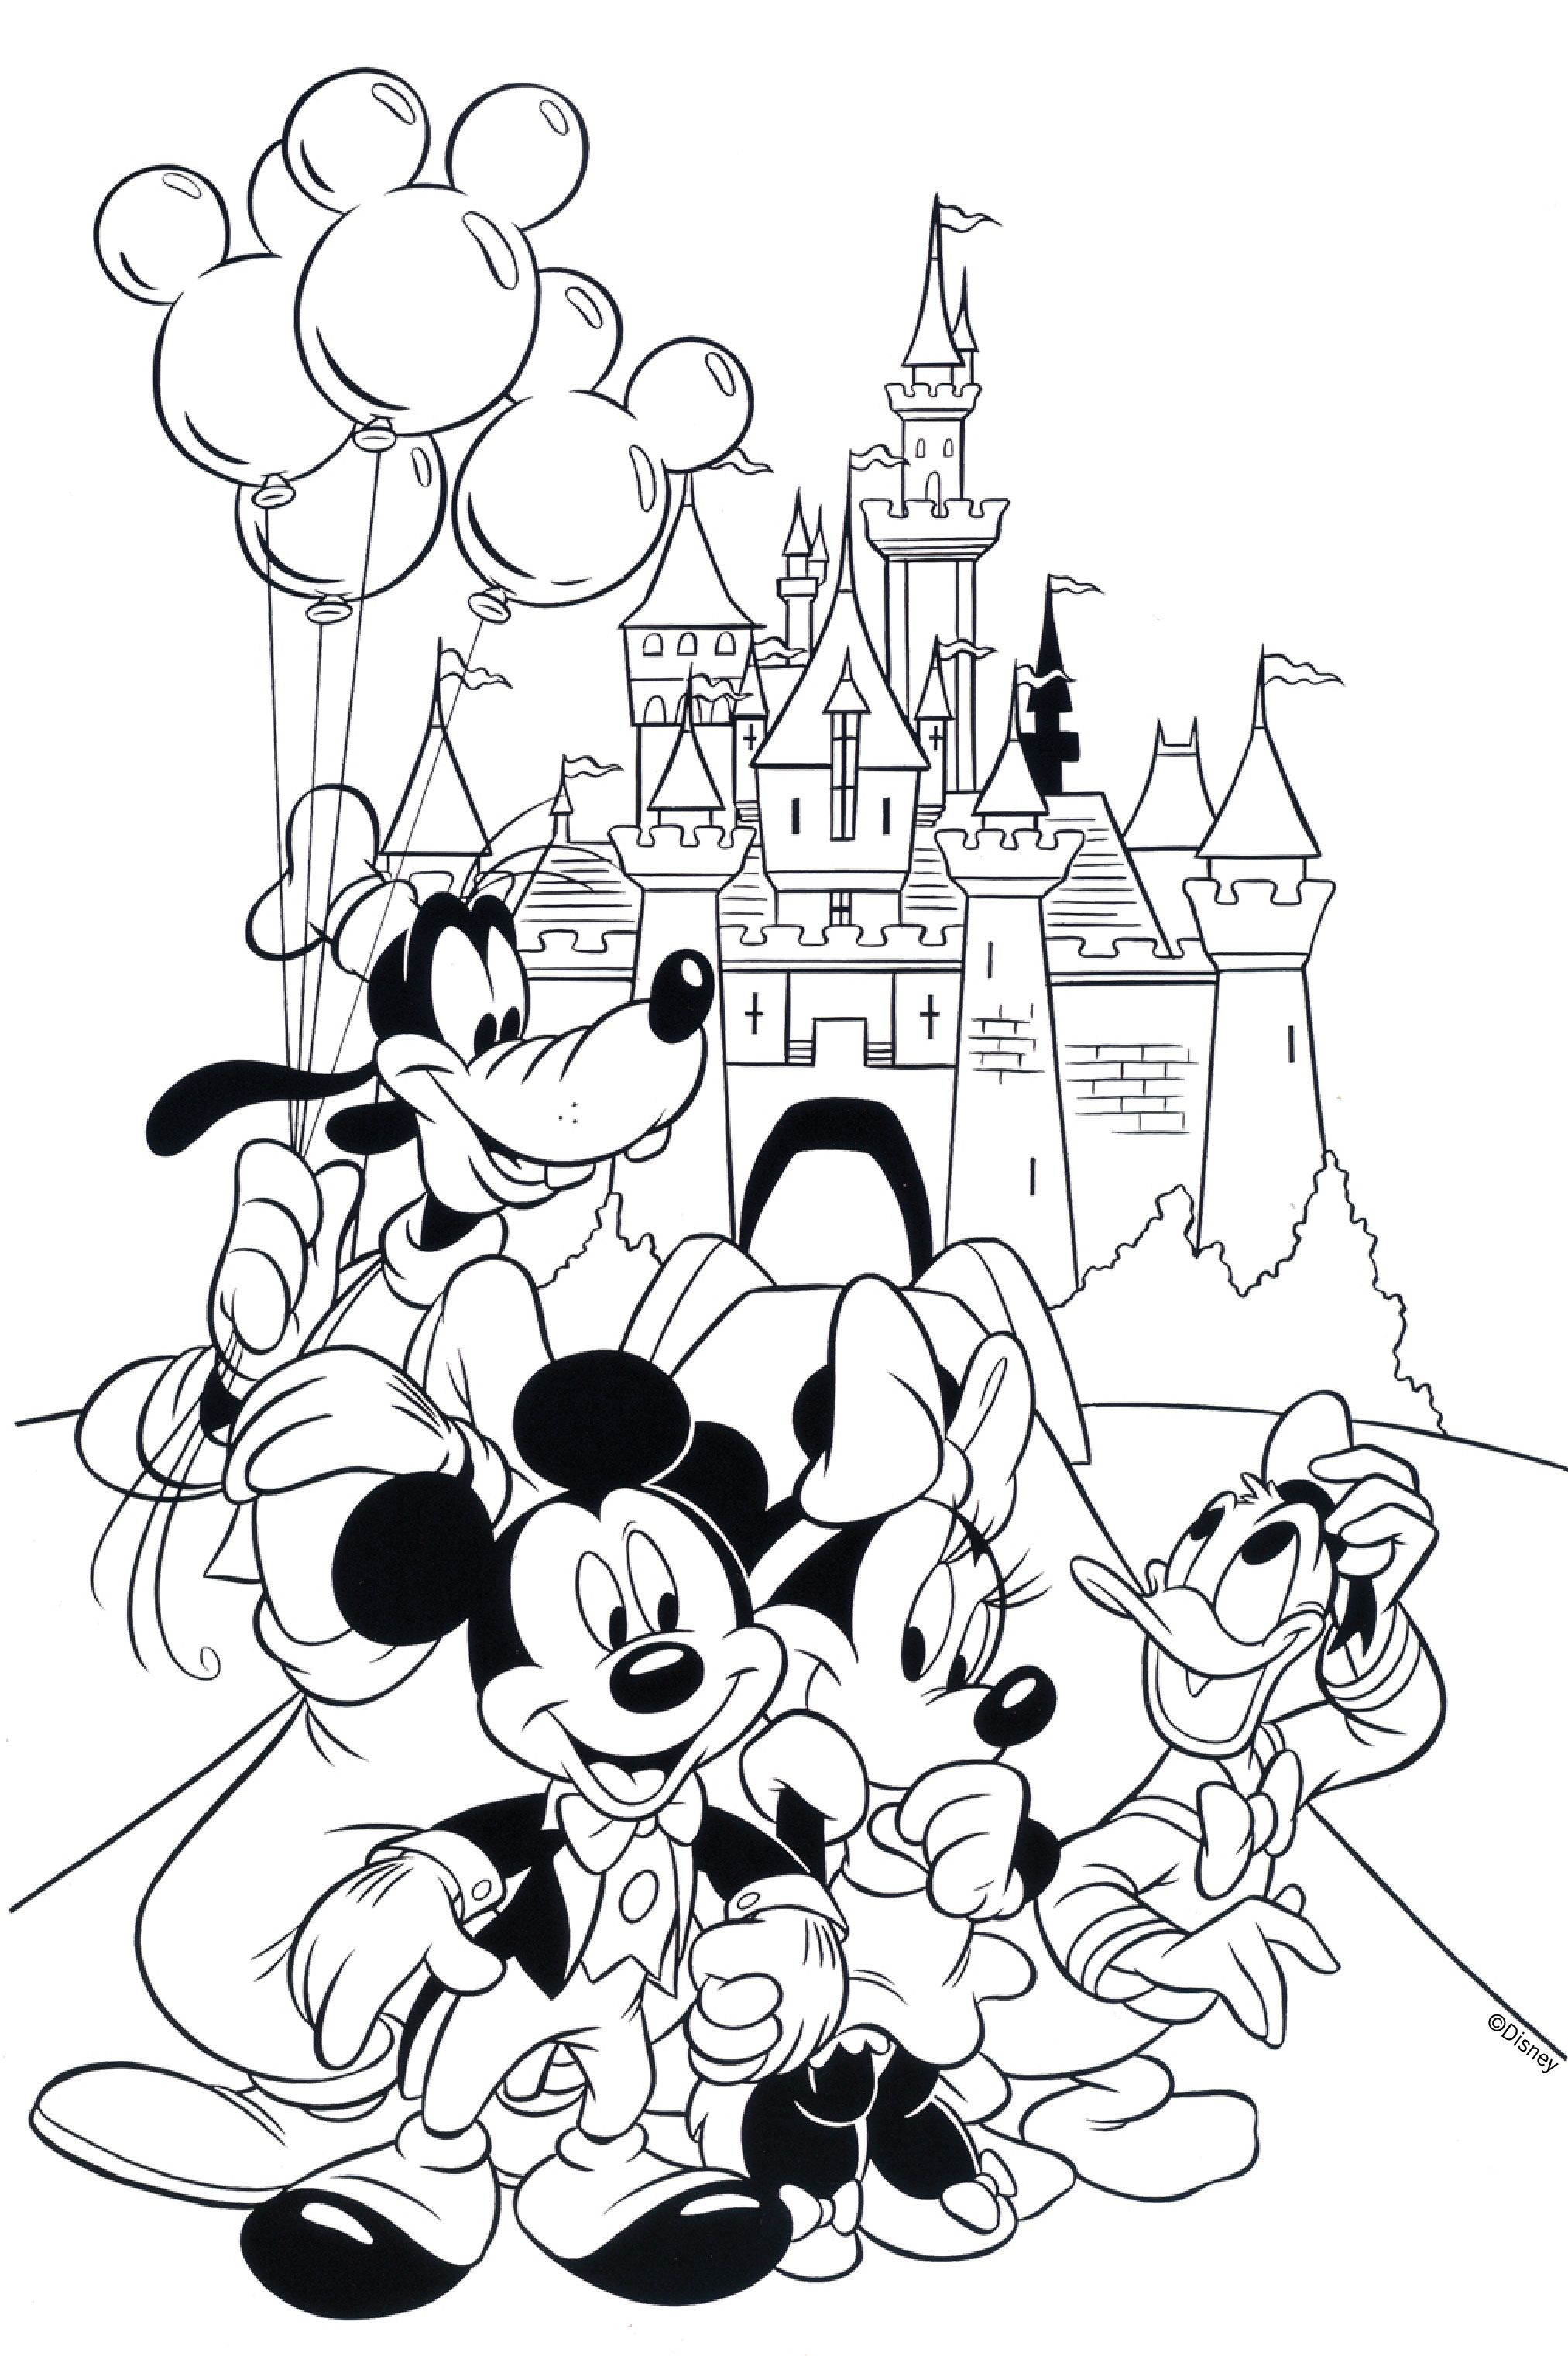 coloring pages for kids disney Free Disney Coloring Pages | Coloring Books | Disney coloring  coloring pages for kids disney